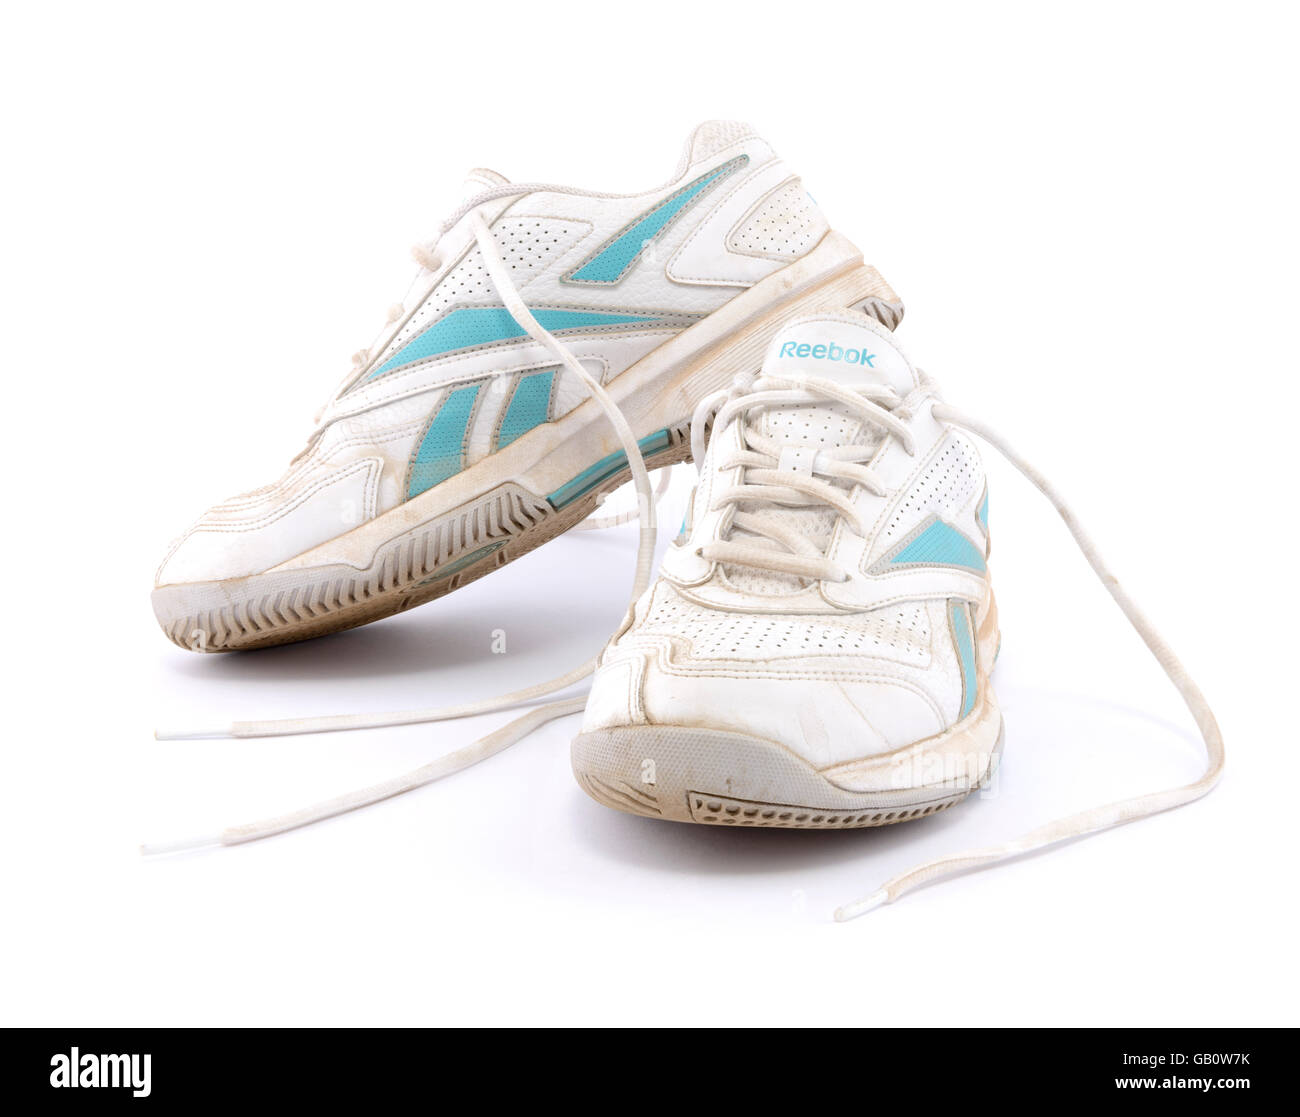 Reebok Shoes Stockfotos & Reebok Shoes Bilder Alamy